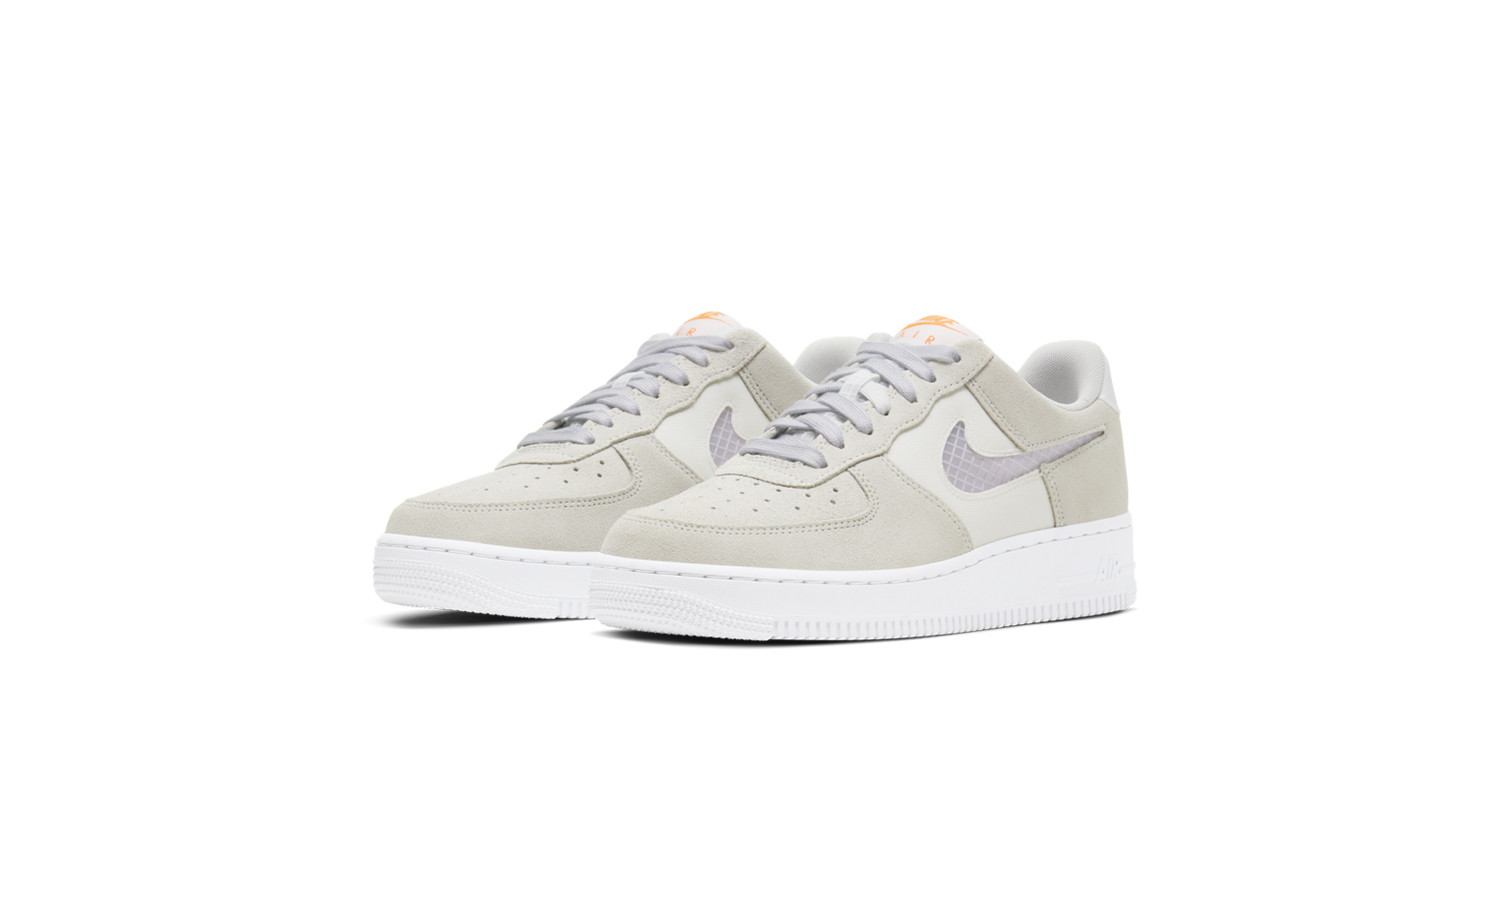 Nike Air Force 1 Transparent Swoosh Grey CJ1647-001